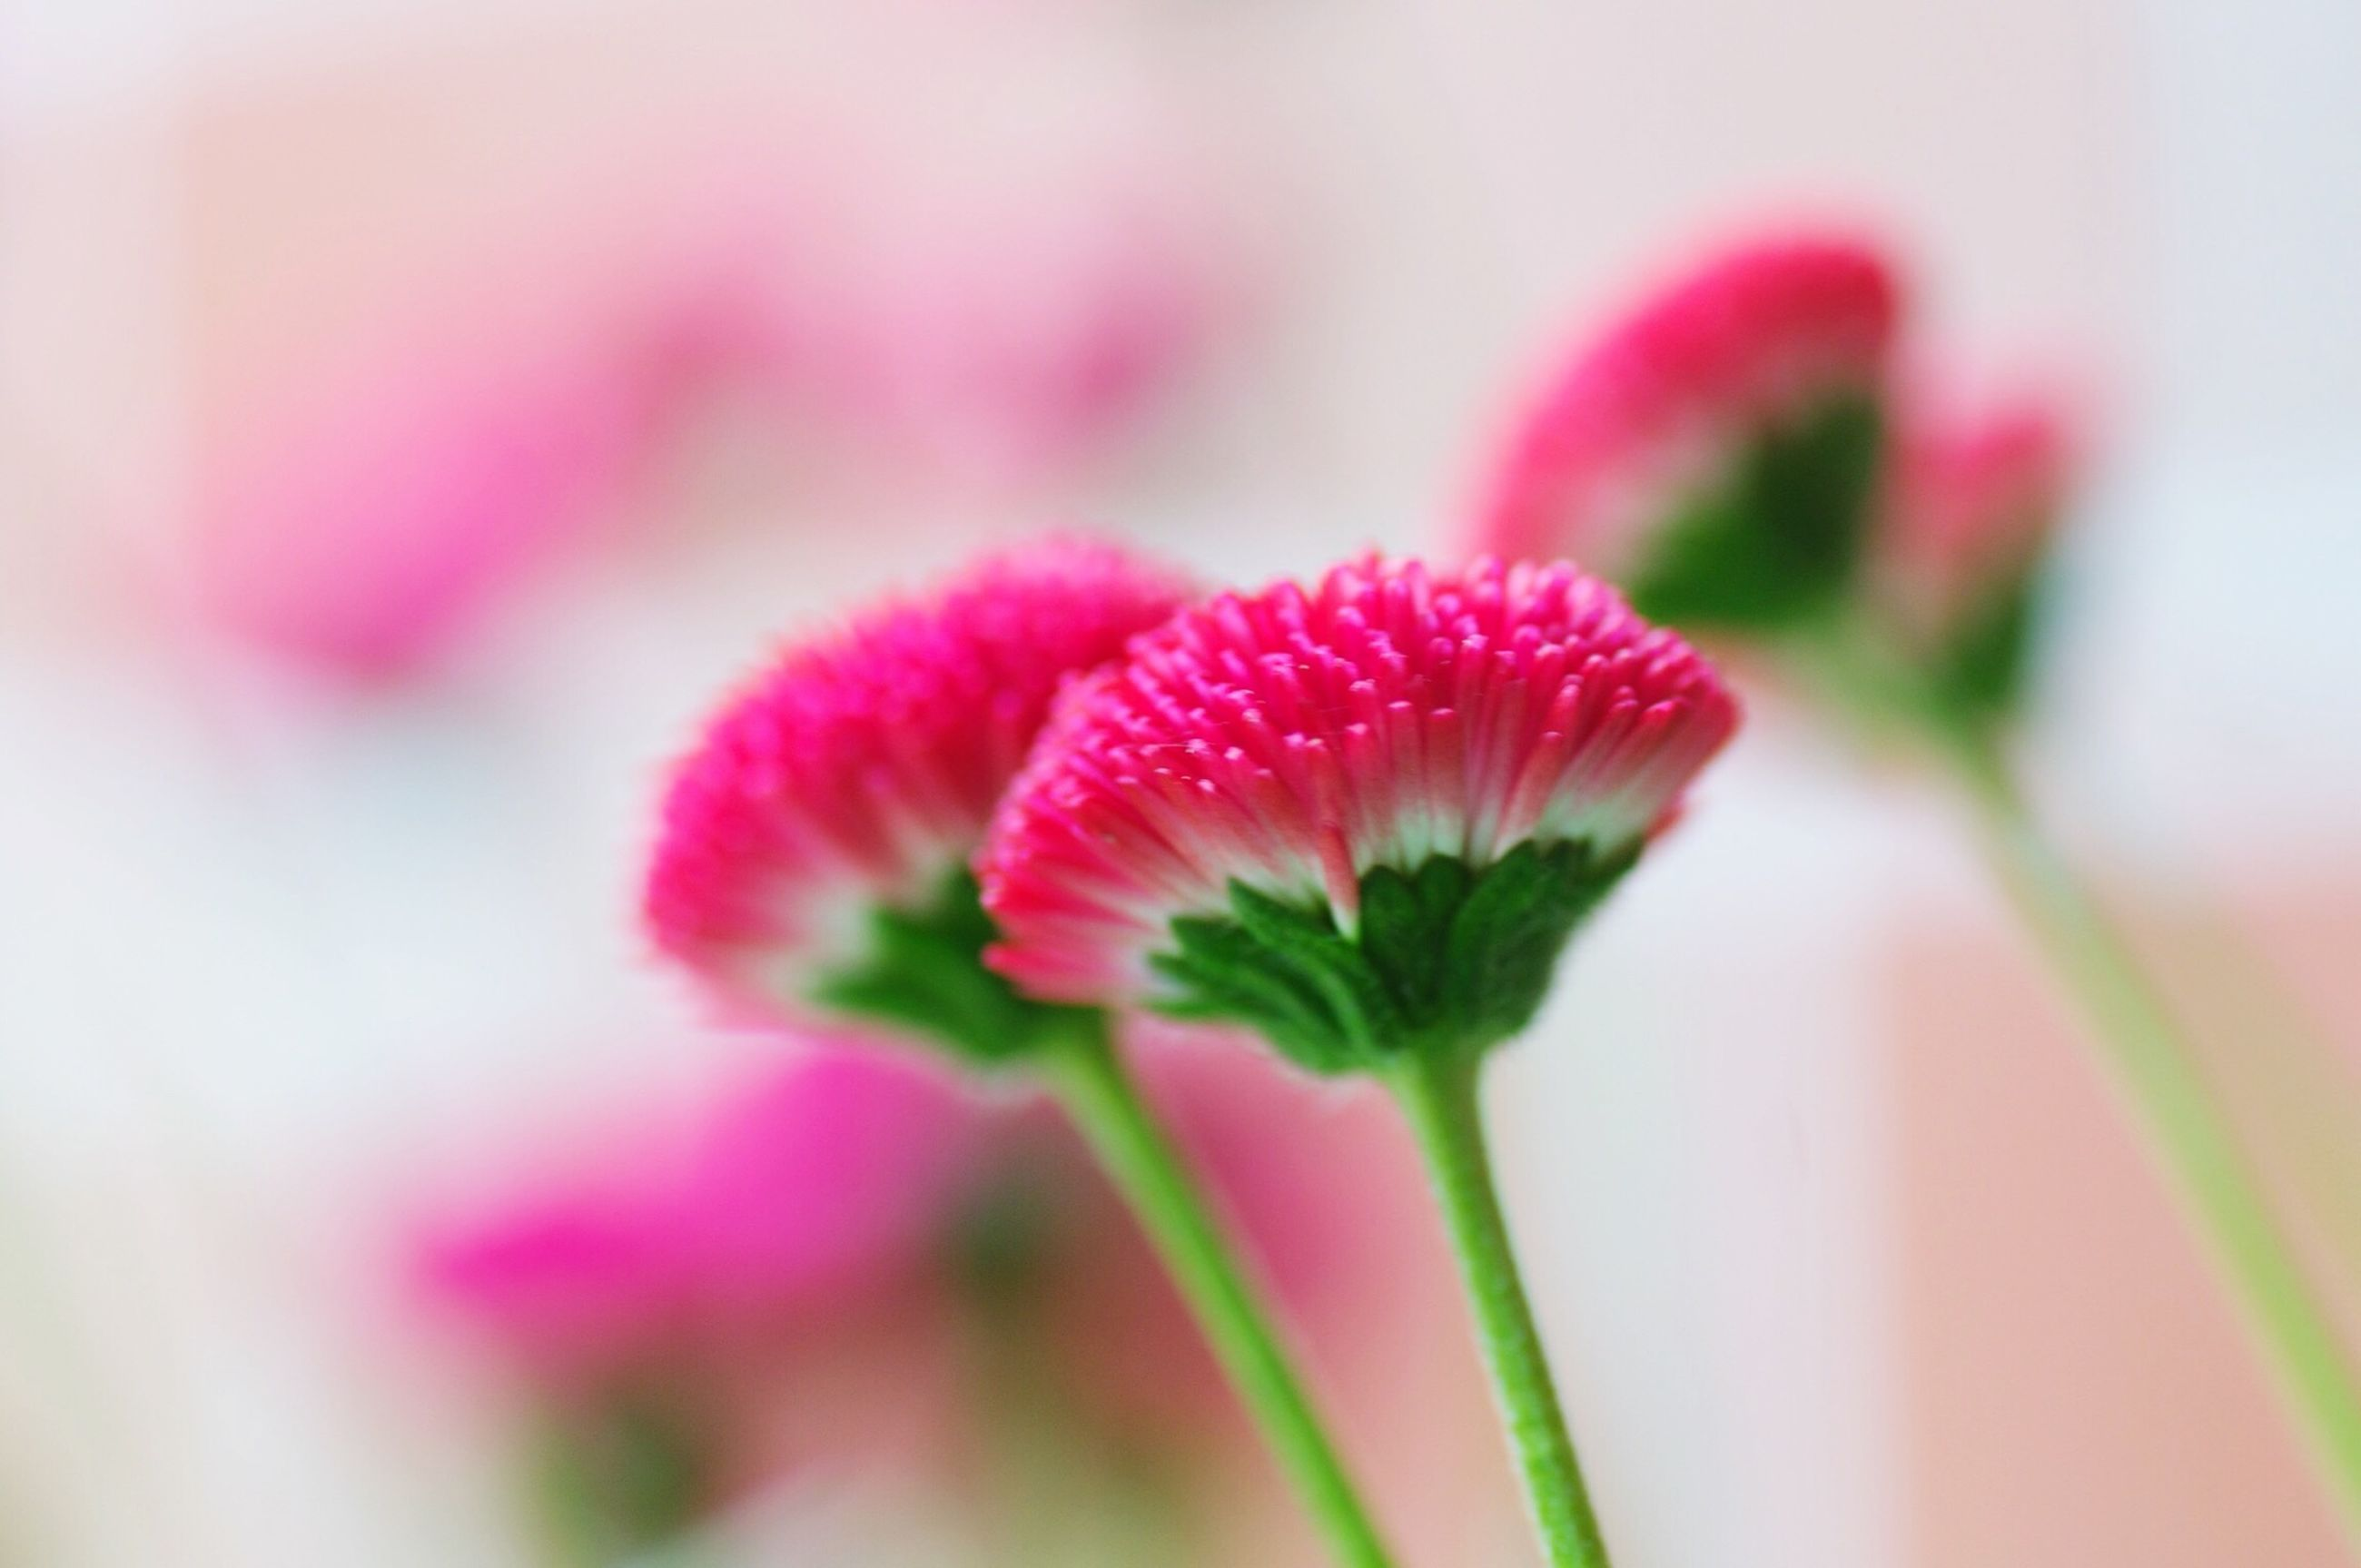 flower, freshness, petal, fragility, growth, close-up, focus on foreground, flower head, beauty in nature, plant, selective focus, stem, red, bud, nature, pink color, blooming, single flower, in bloom, new life